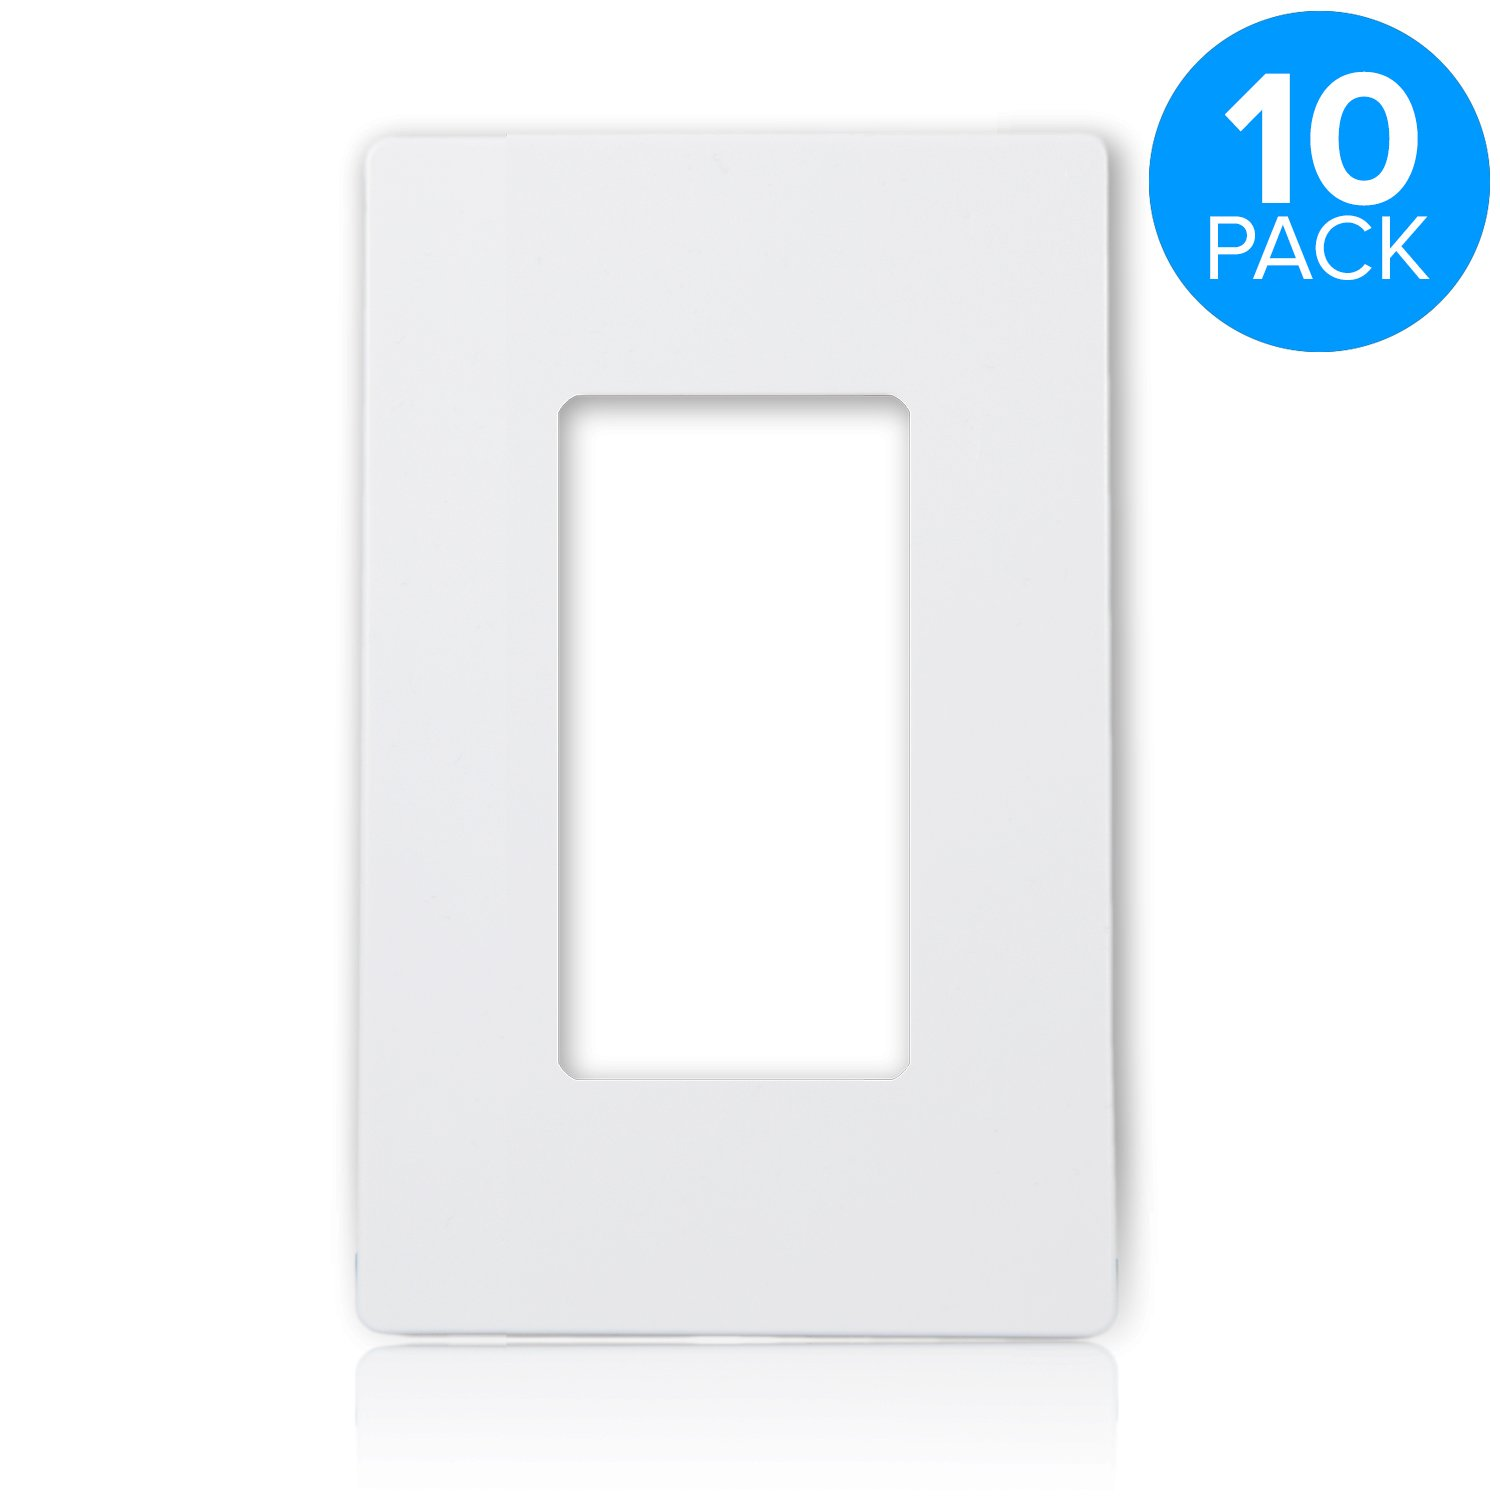 stunning Decorative Electrical Wall Plates Part - 13: Maxxima 1 Gang Decorative Outlet Screwless Wall Plate, White, Single Outlet,  Standard Size (Pack of 10) - - Amazon.com